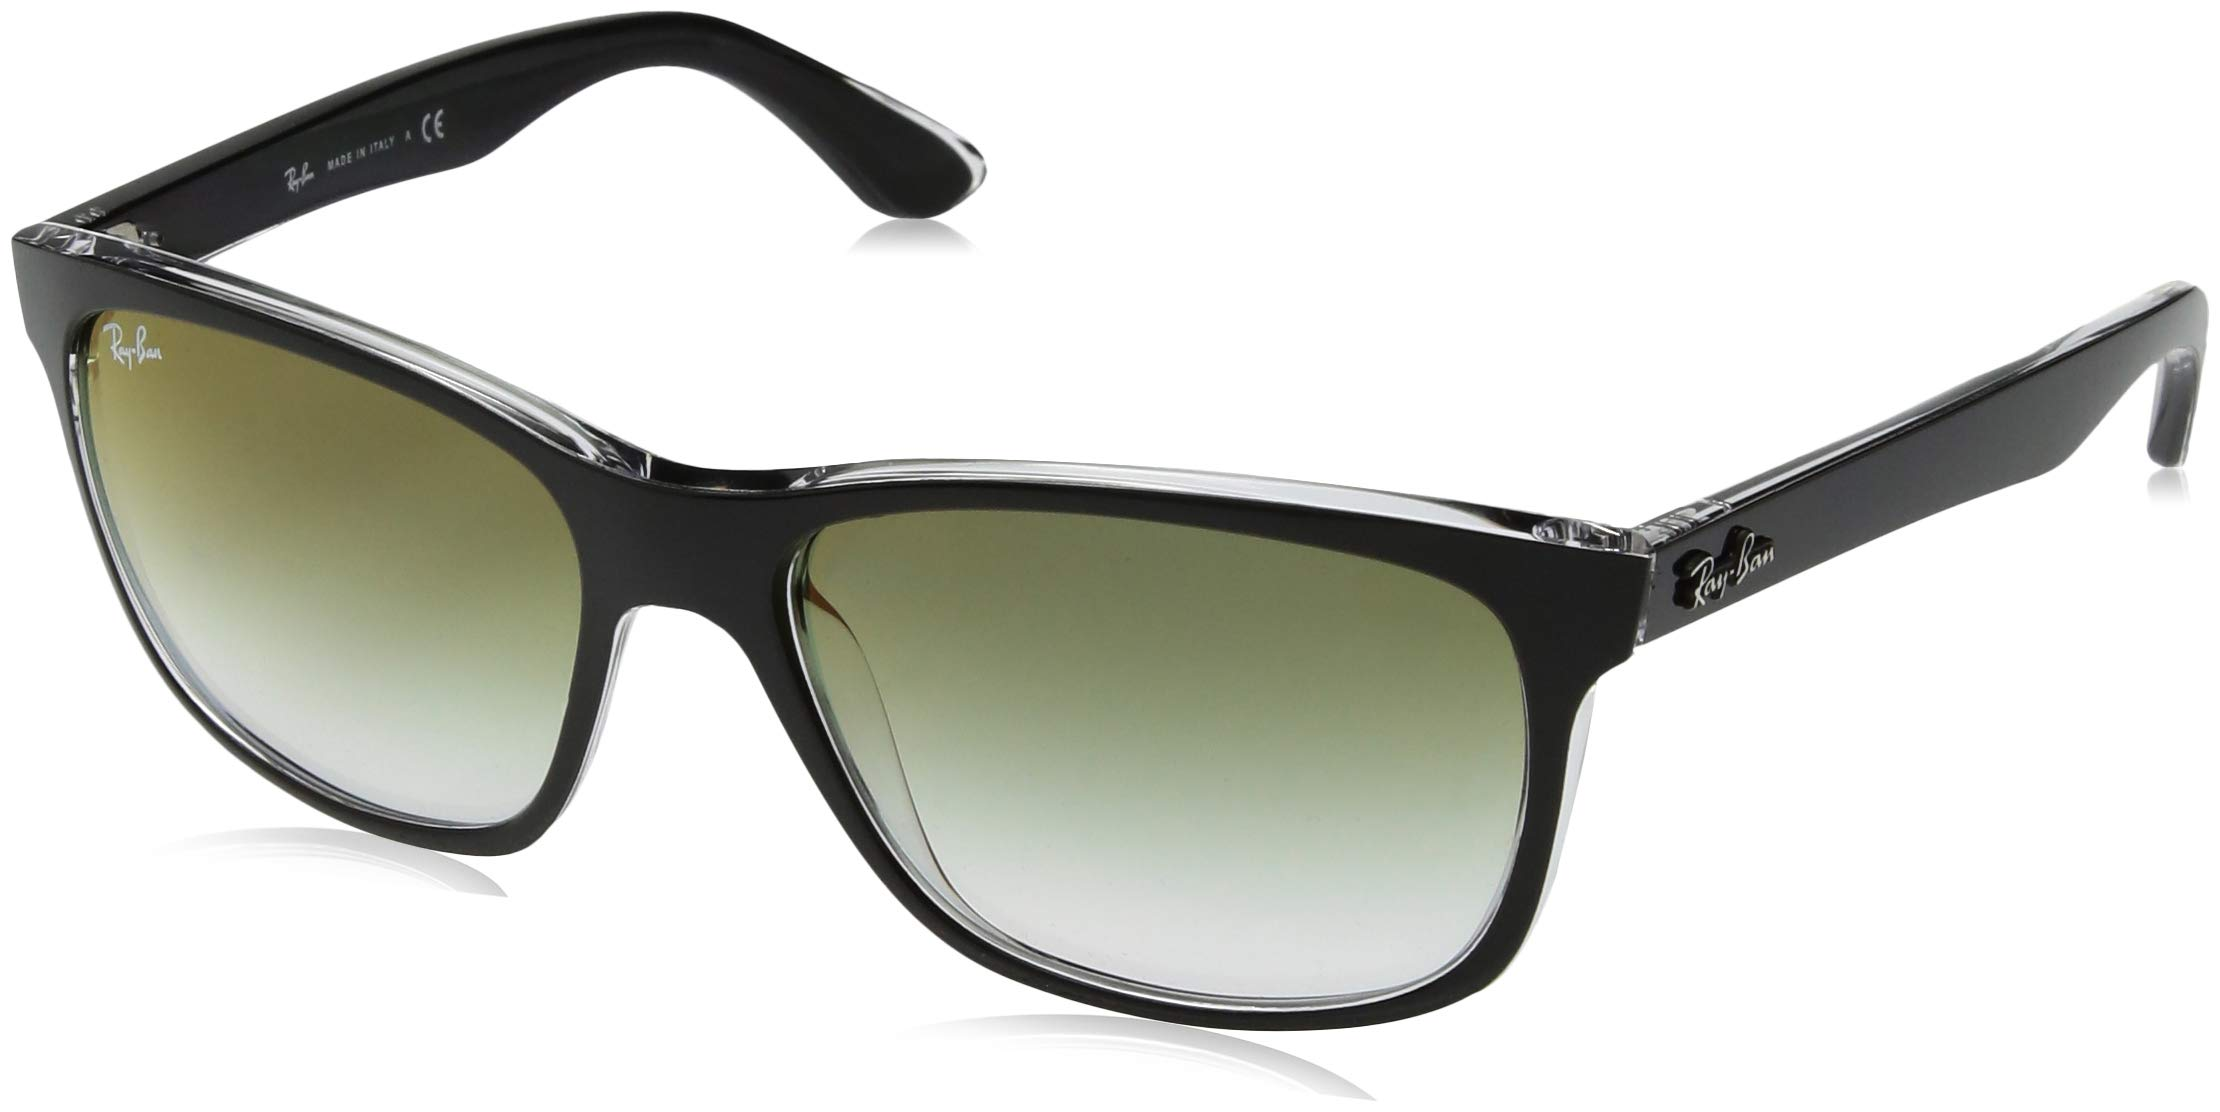 RAY-BAN RB4181 Square Sunglasses, Black On Transparent/Green Red Gradient Mirror, 57 mm by RAY-BAN